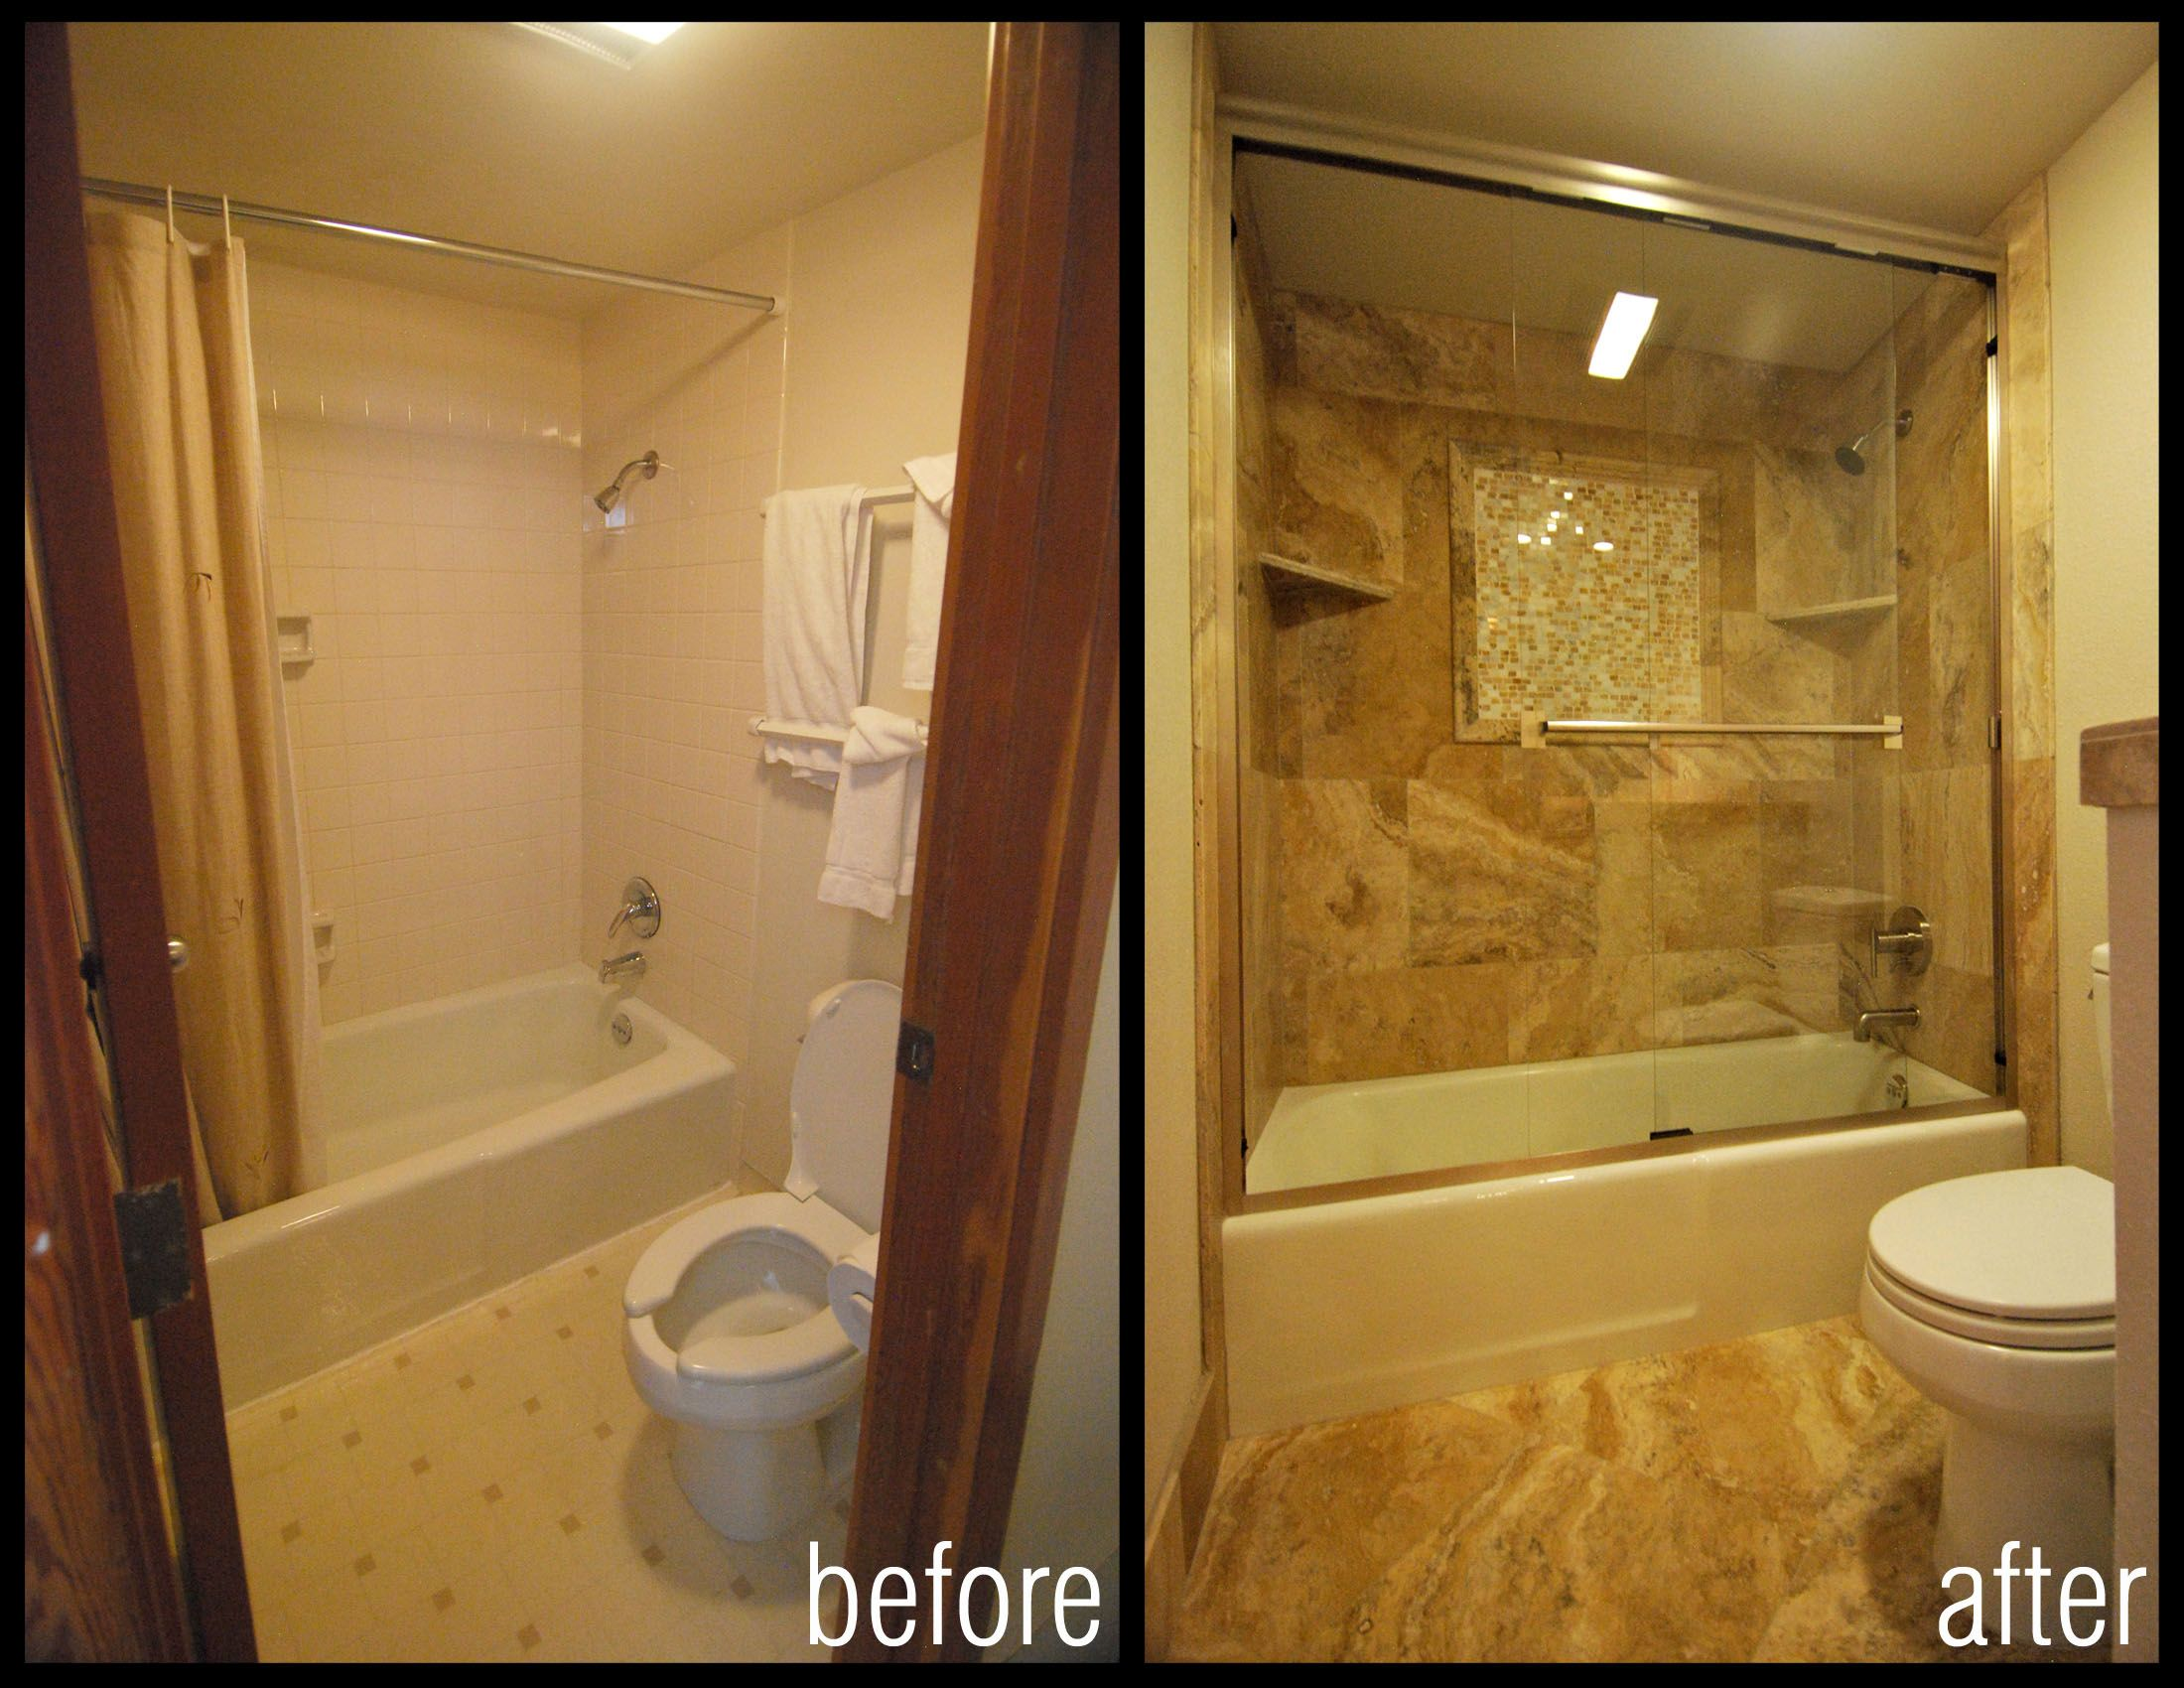 Renovation Ideas Before And After Simple Before And After Images Of Bathroom Shower Remodels  Condo Design Inspiration